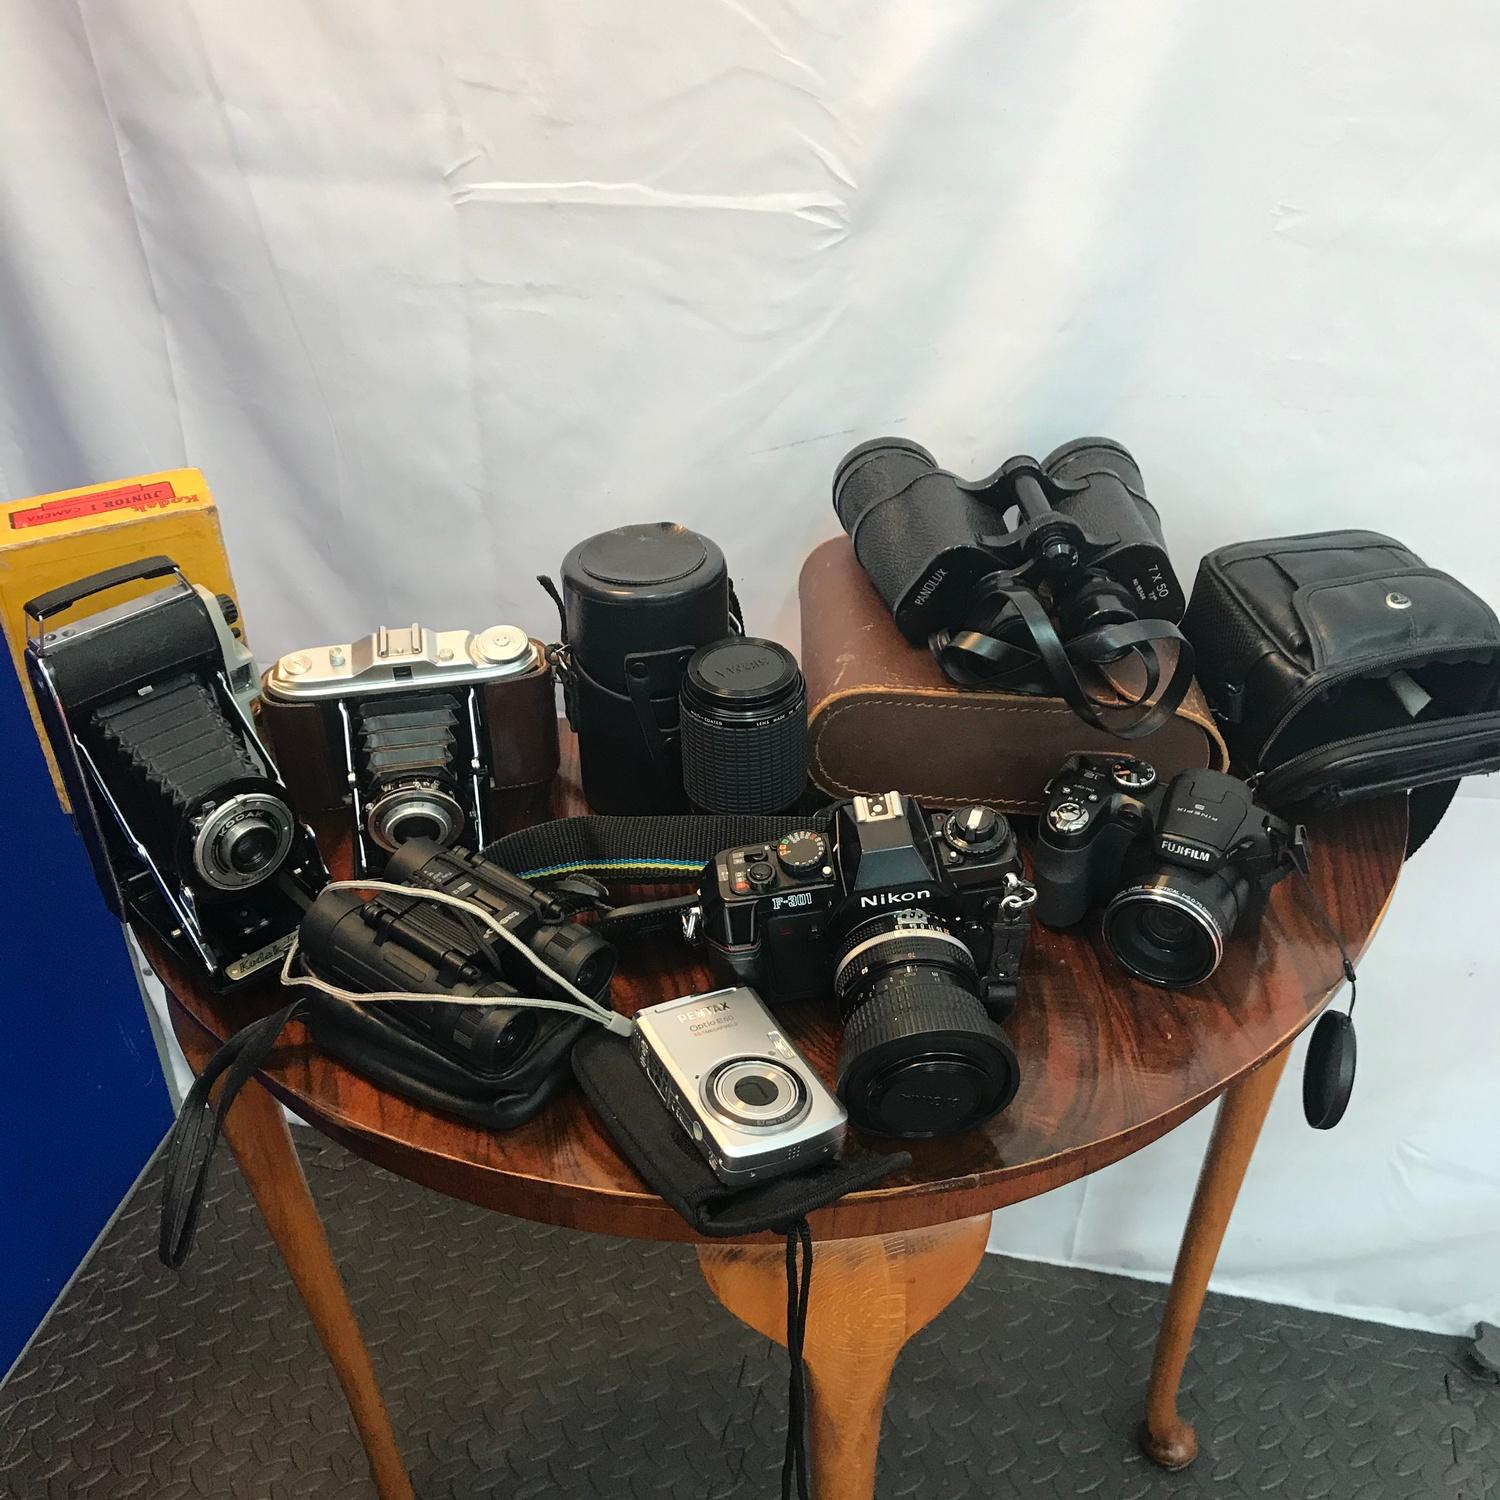 Lot 195A - A Selection of vintage cameras to include Bellow Kodak Junior 1, Bellow camera, Tasco binoculars,